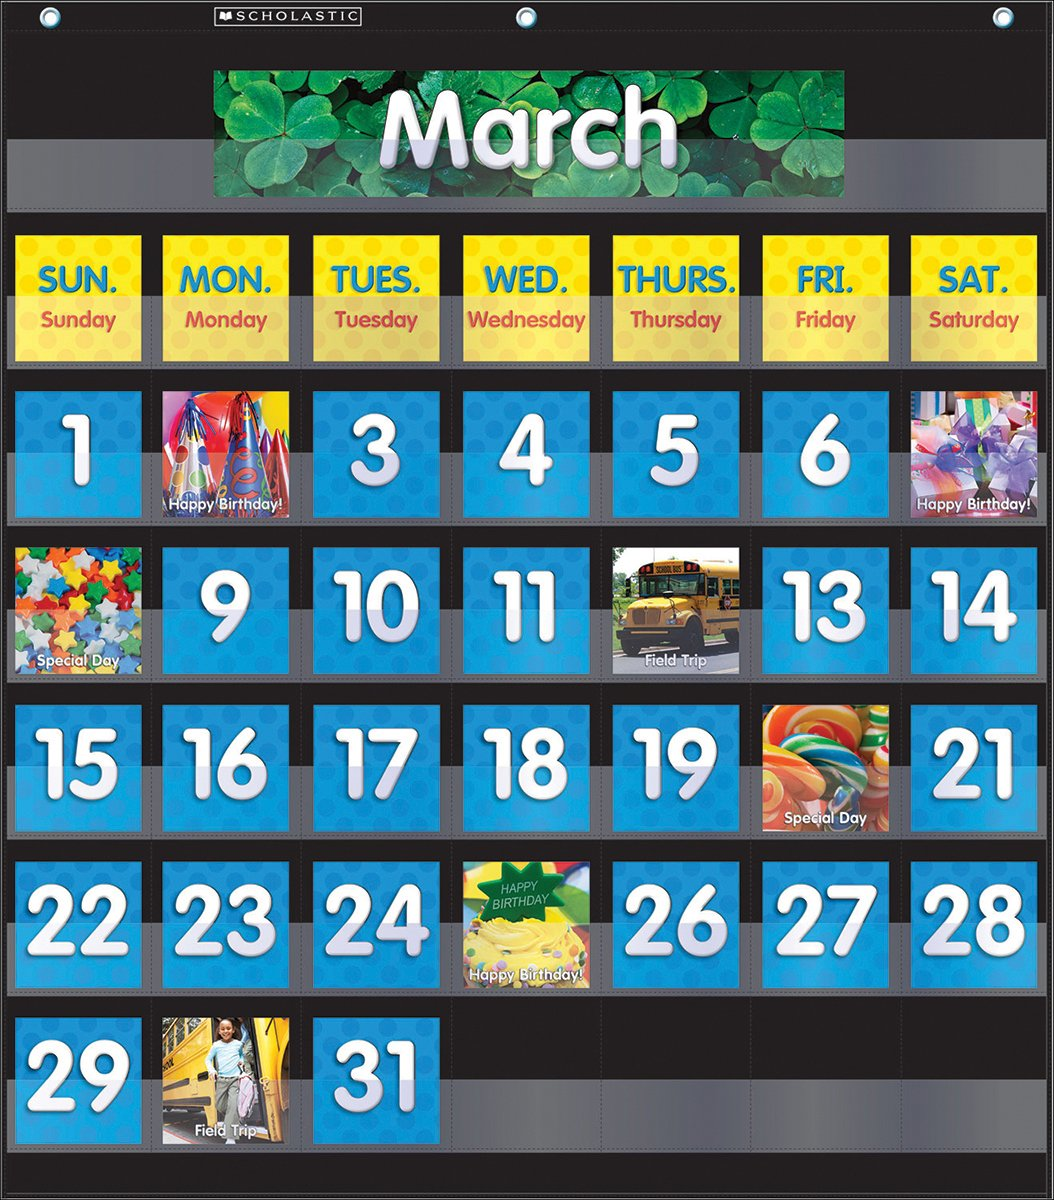 Scholastic Classroom Resources Pocket Chart Monthly Calendar, Black (SC583866) by Scholastic